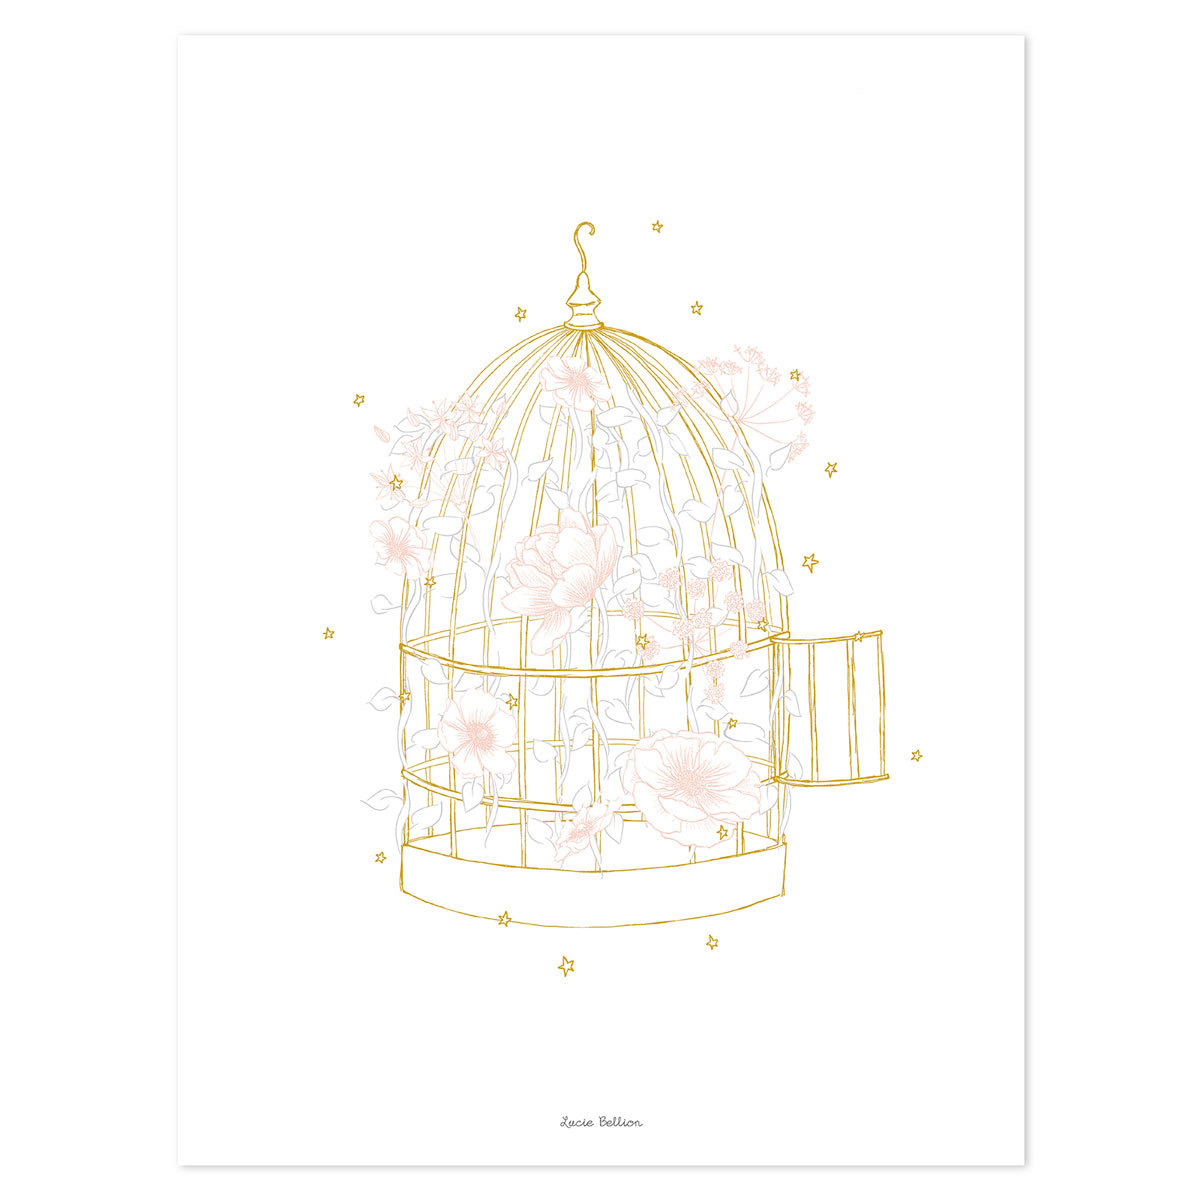 Affiche & poster Botany - Affiche Cage Fleurie Botany - Affiche Cage Fleurie